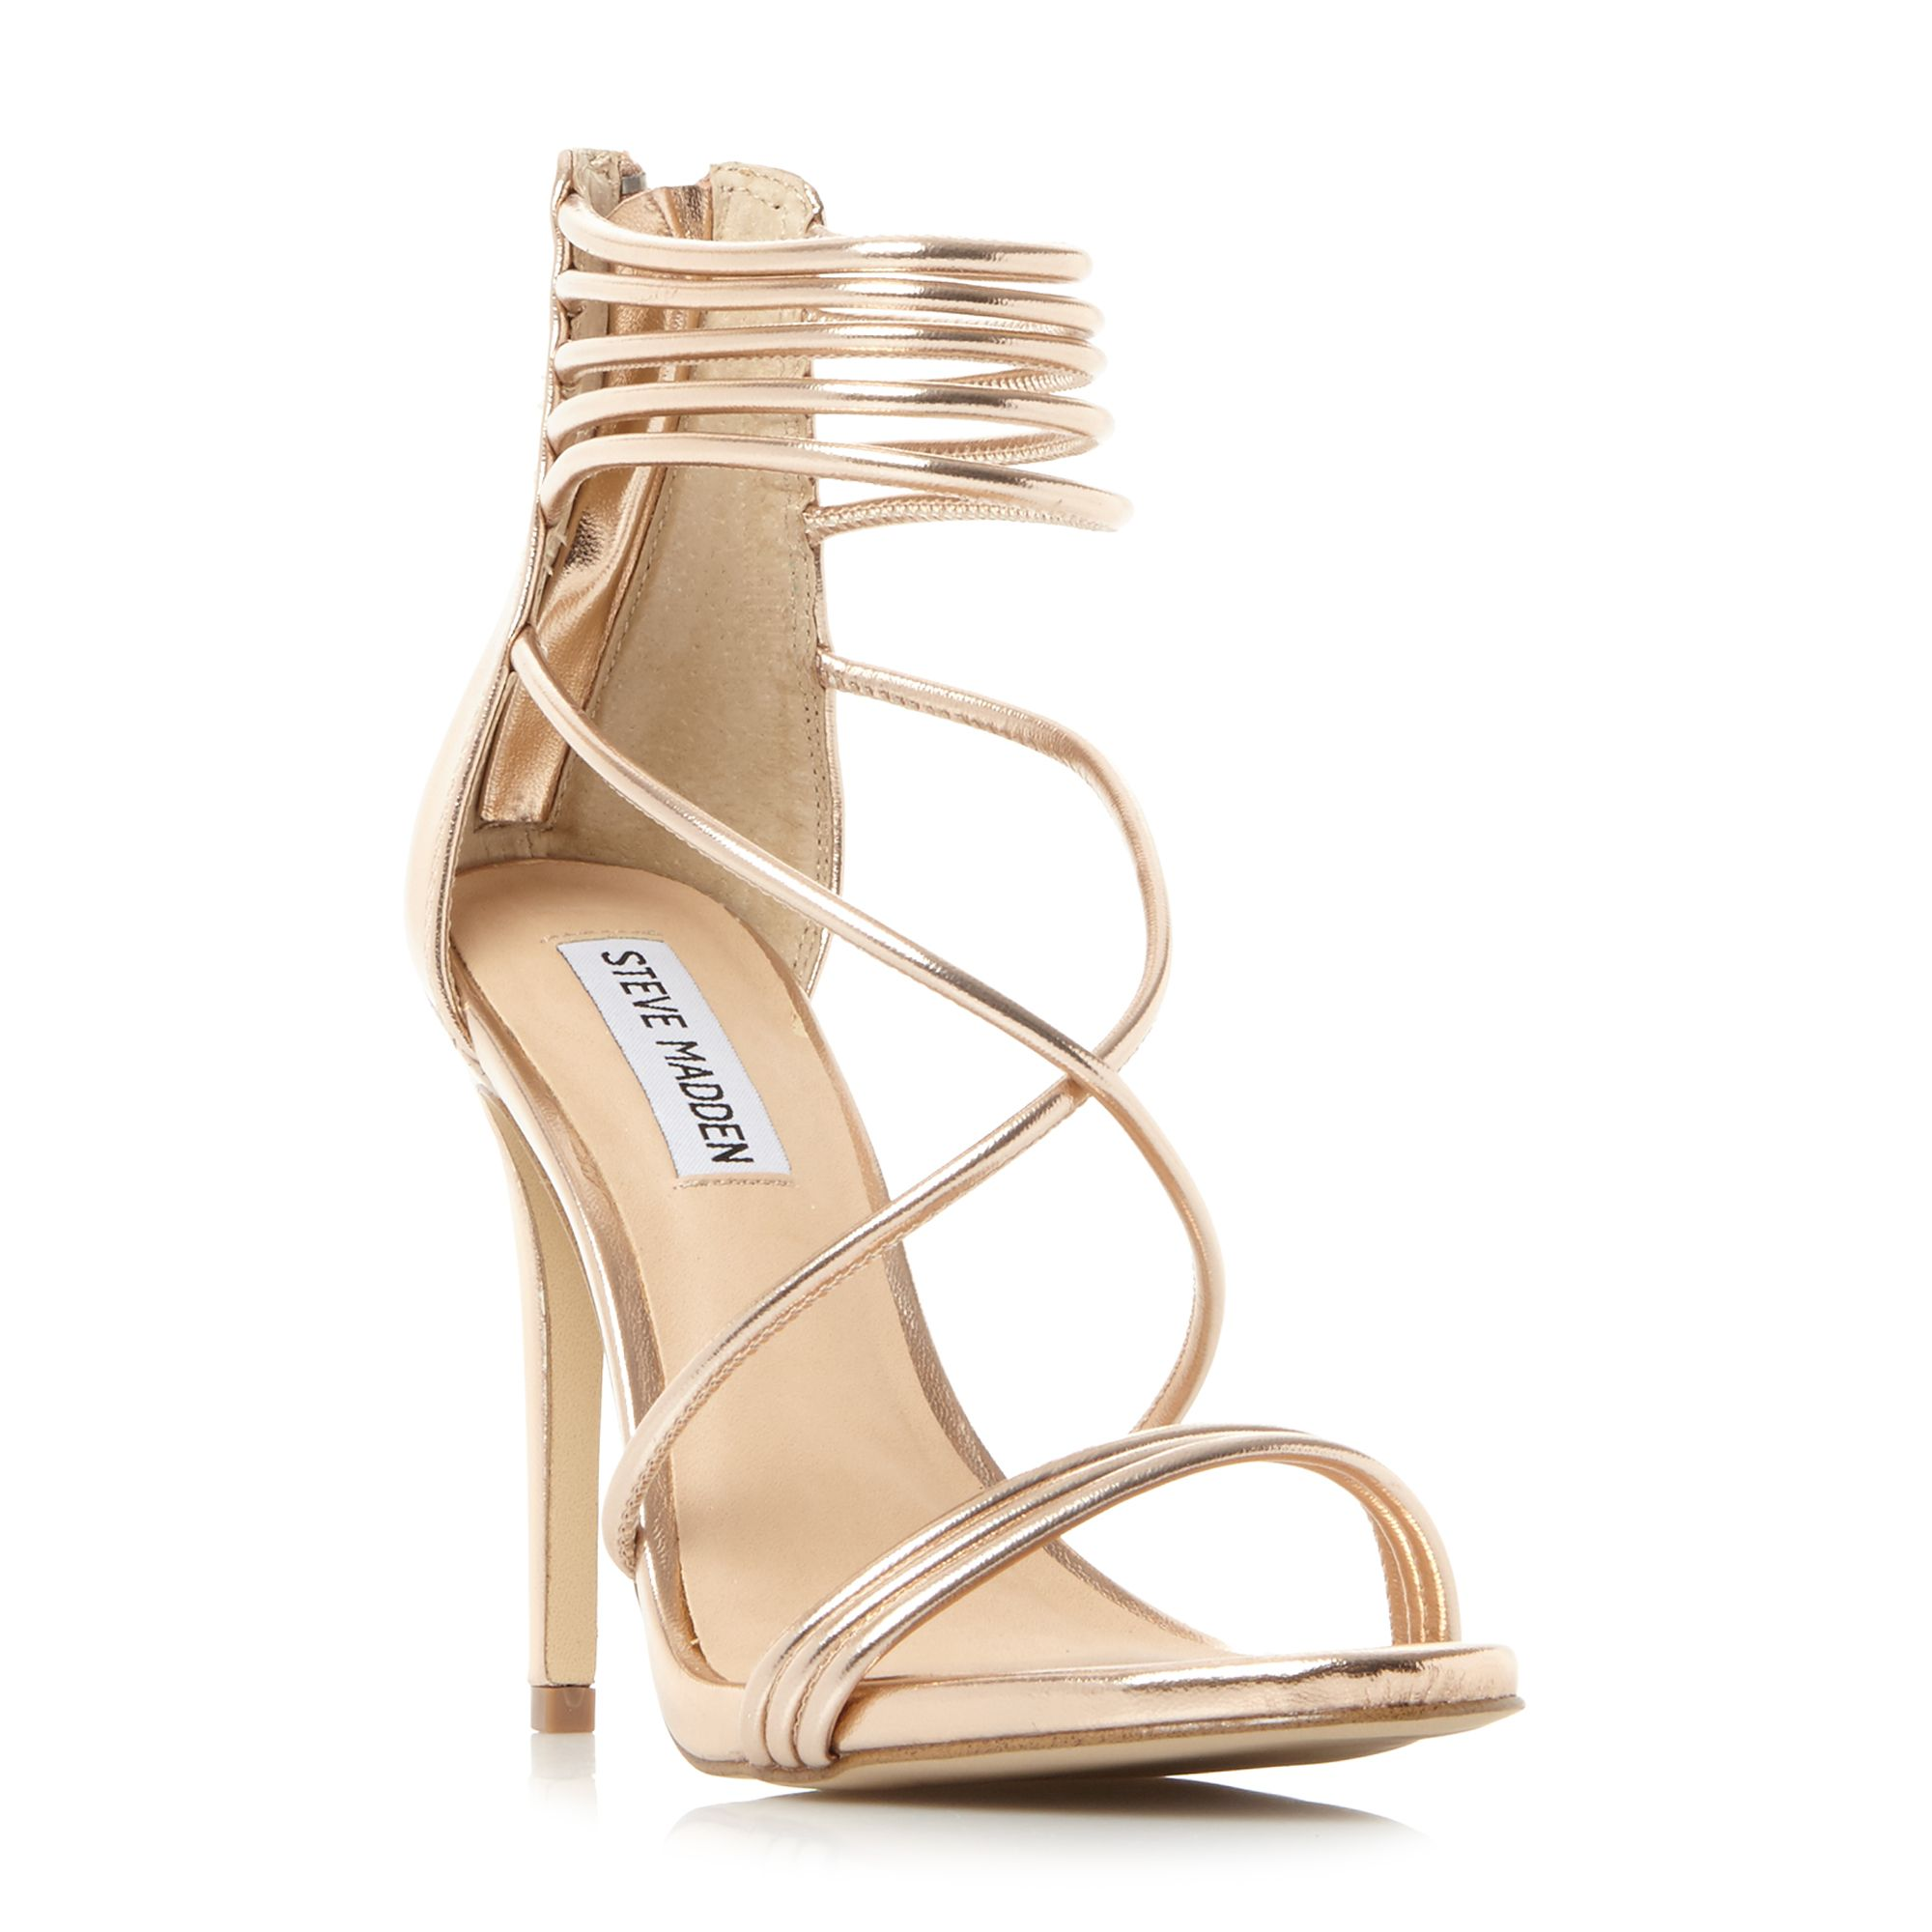 Steve Madden Answer SM Strappy Ankle Sandals, Rose